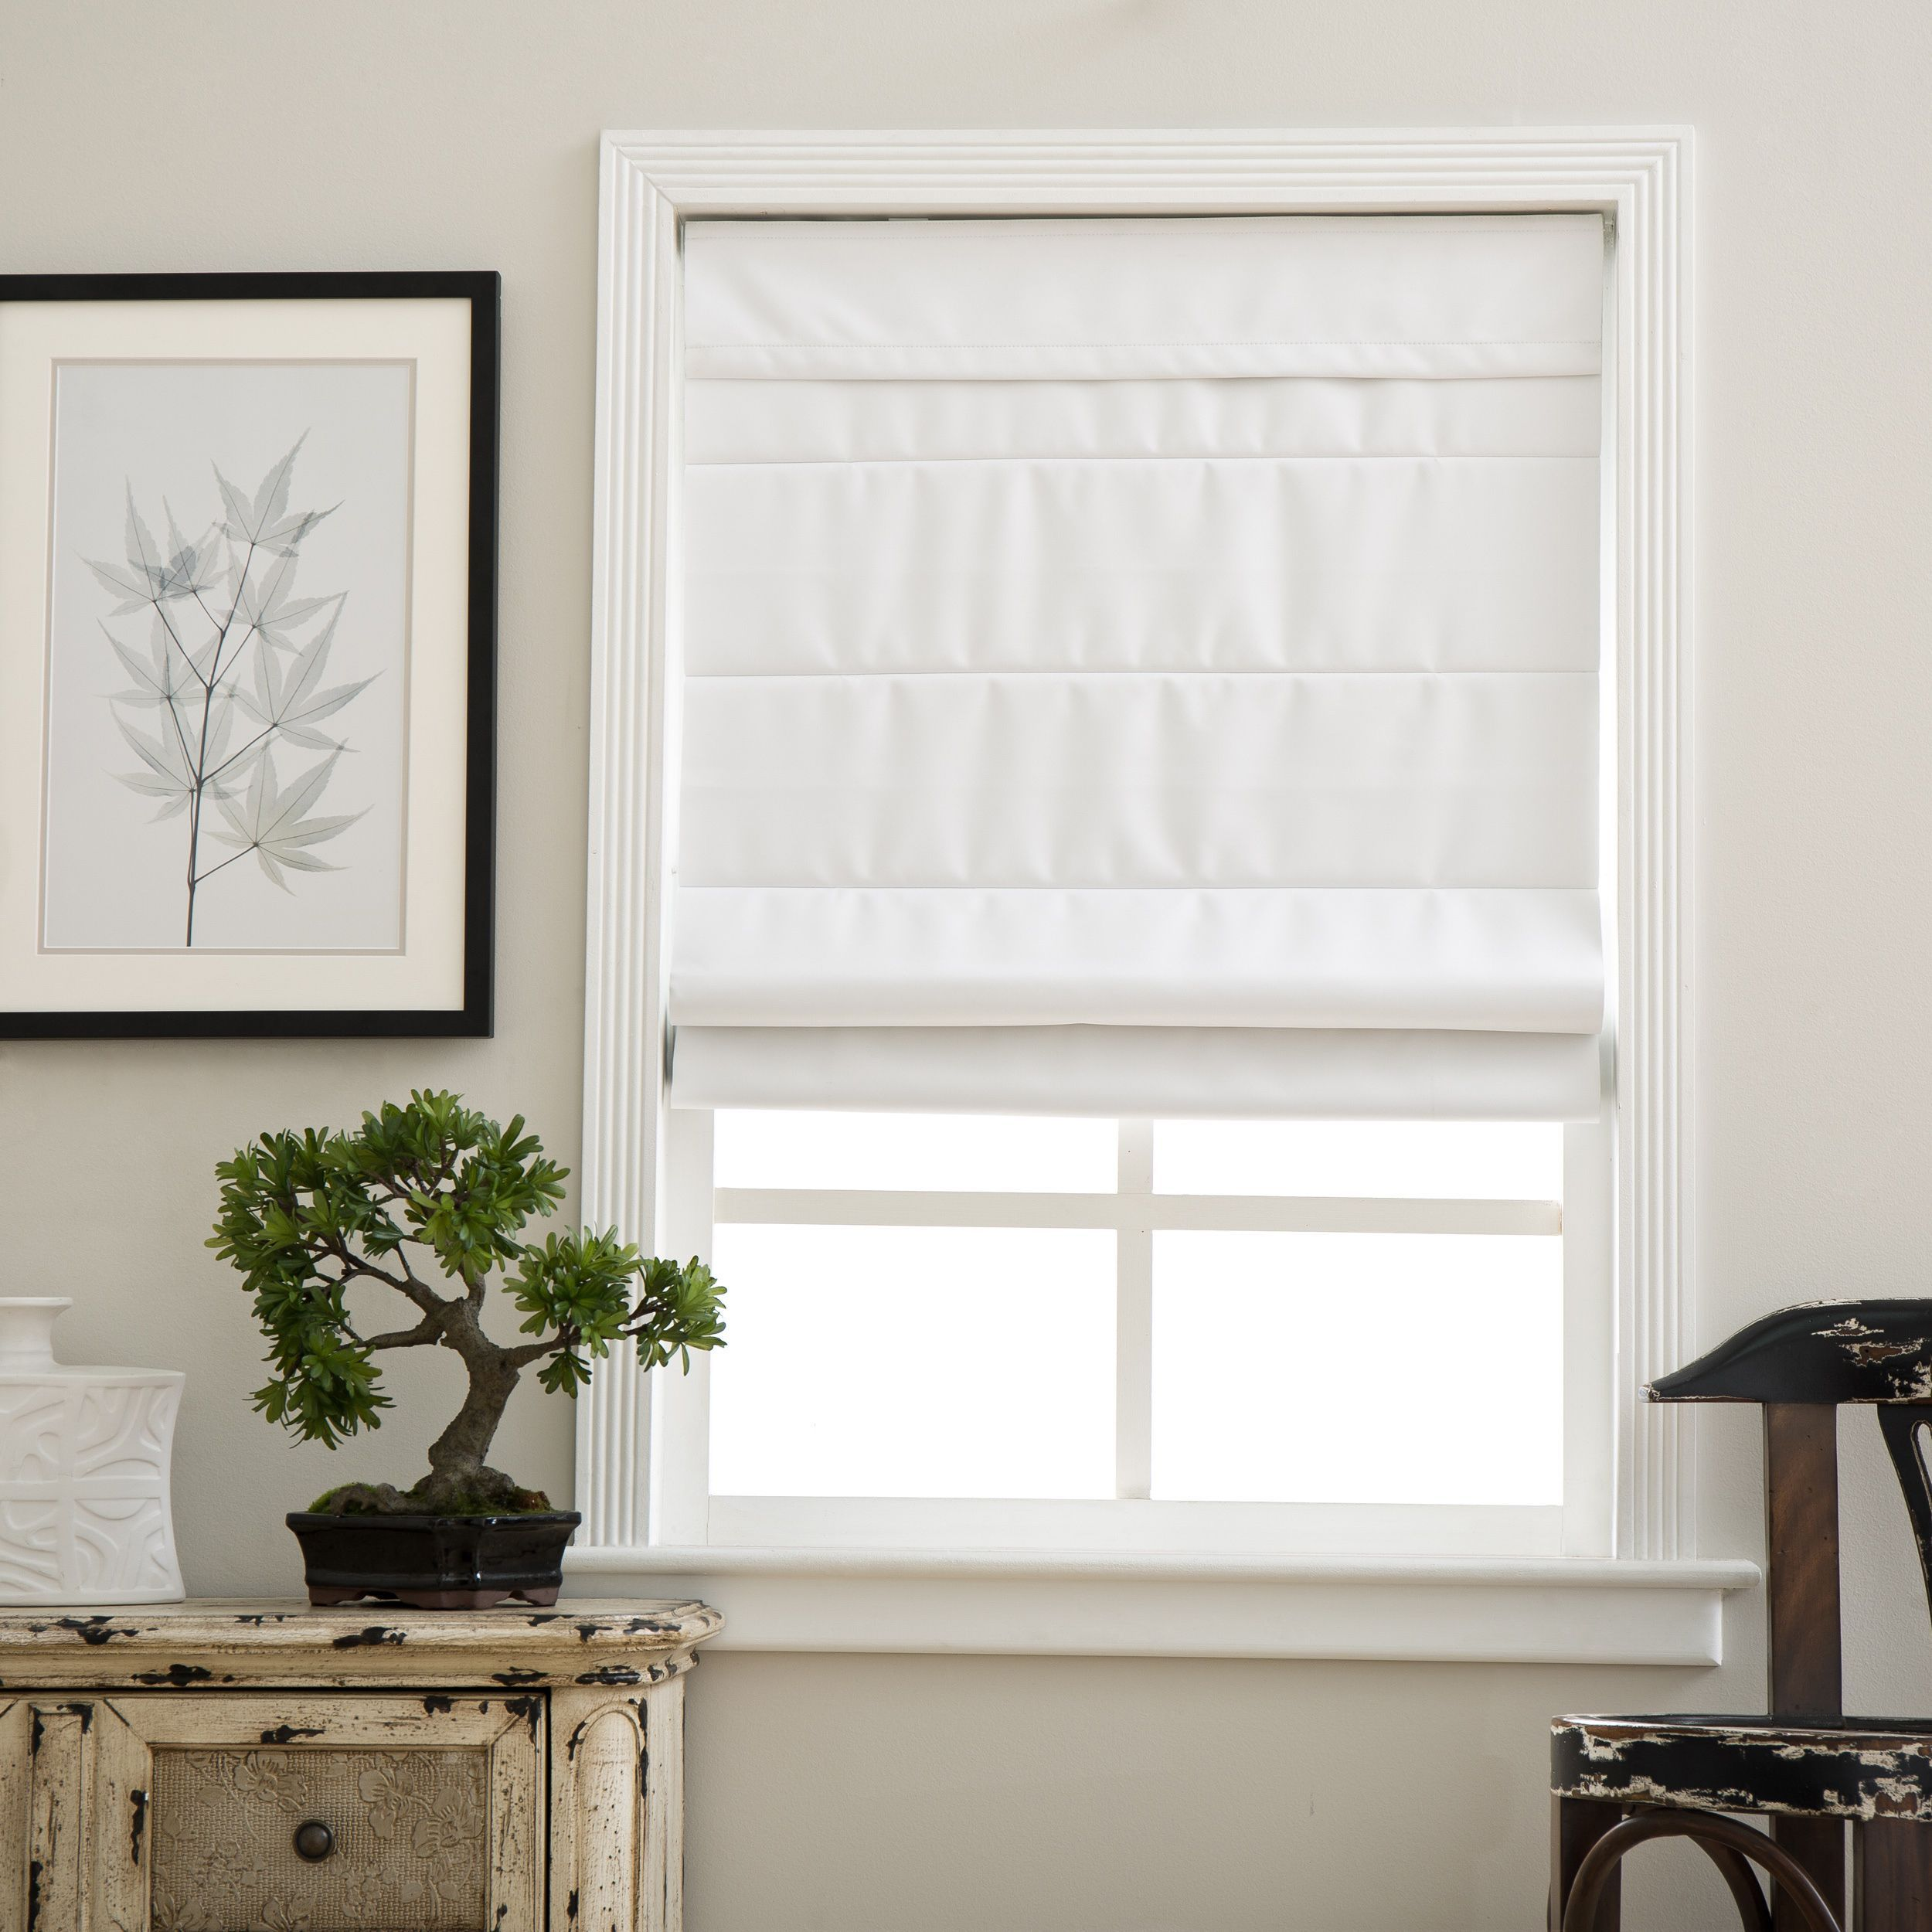 within x cell cordless darkening blinds window o blackout cellular for shades windows proportions horizontal